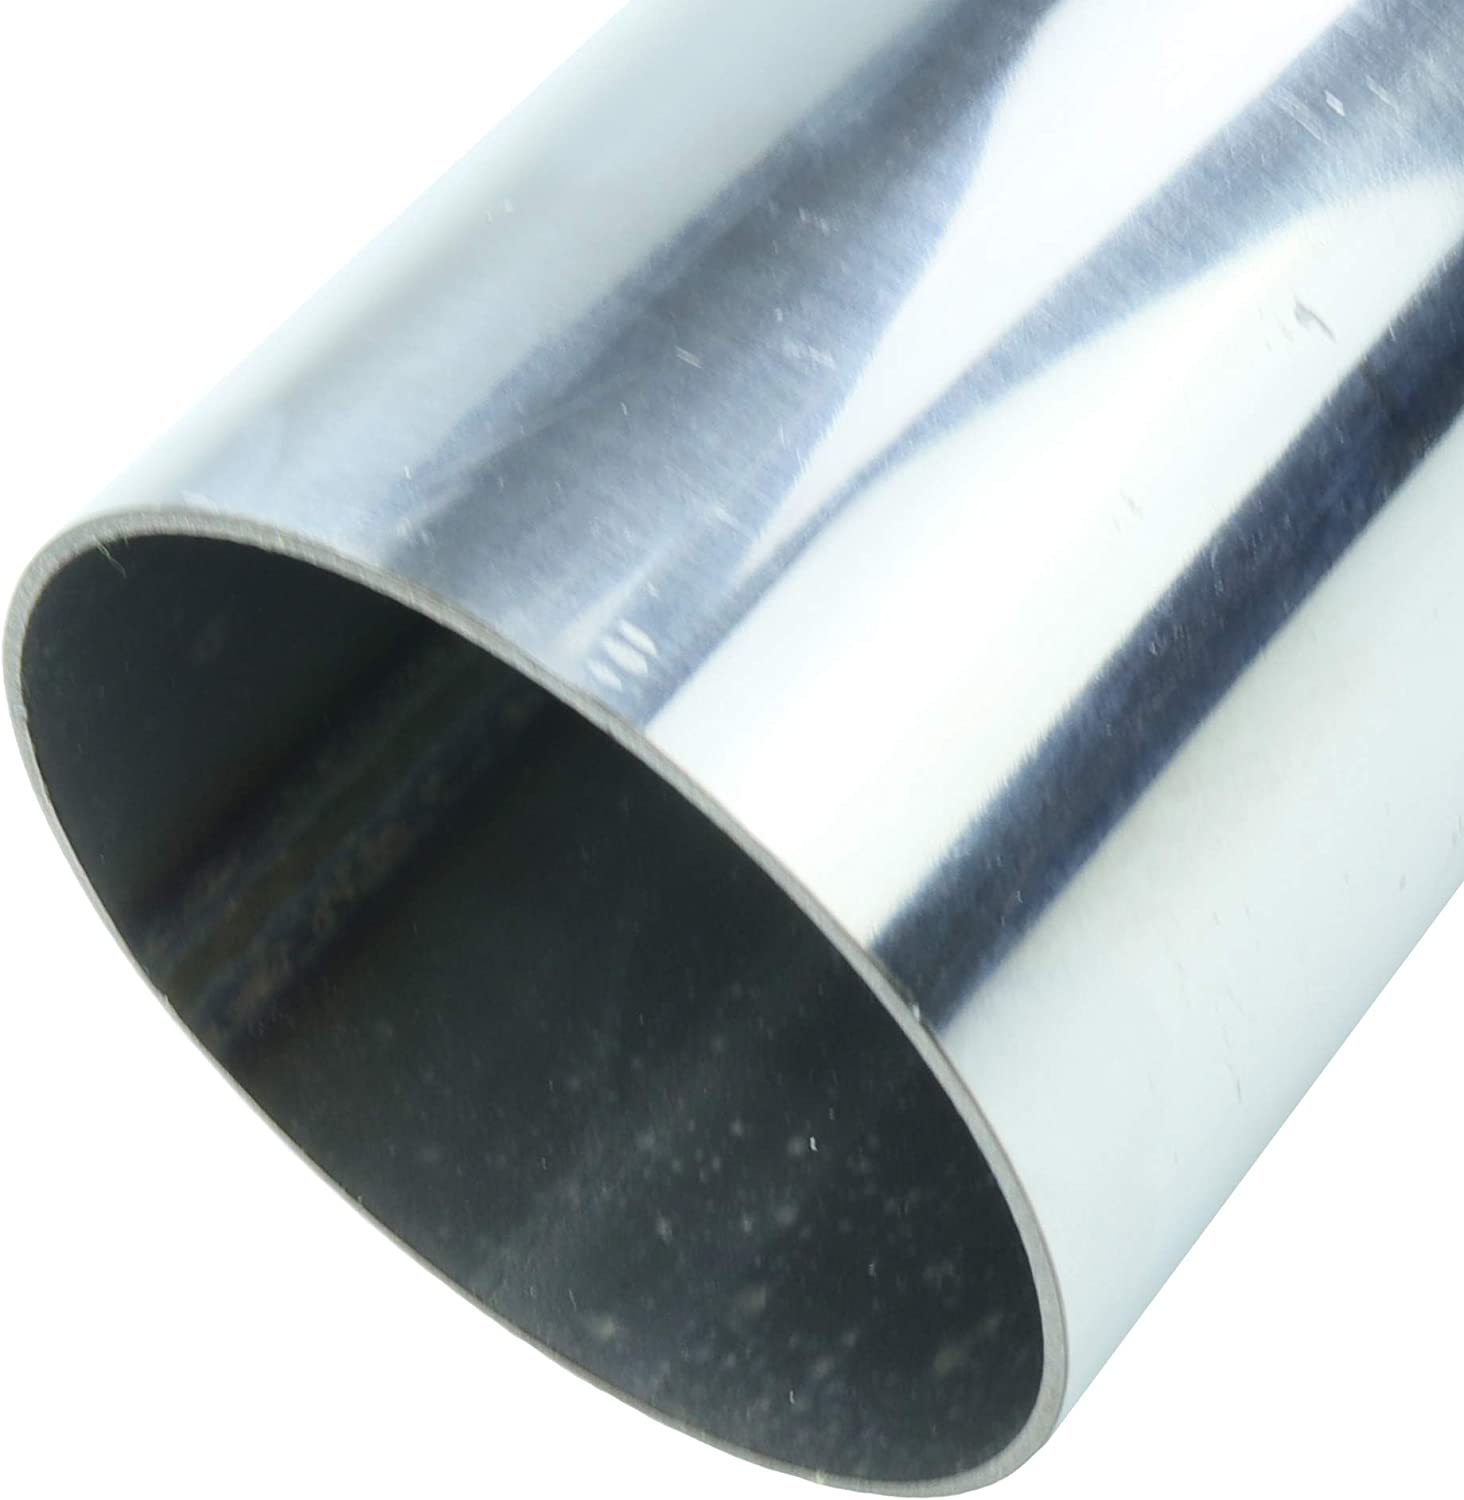 TOTALFLOW 20 Inch Length 20-304-201-15 Universal Straight Exhaust Pipe Extension 304 Stainless Steel-Tube Replacement 2 Inch-OD